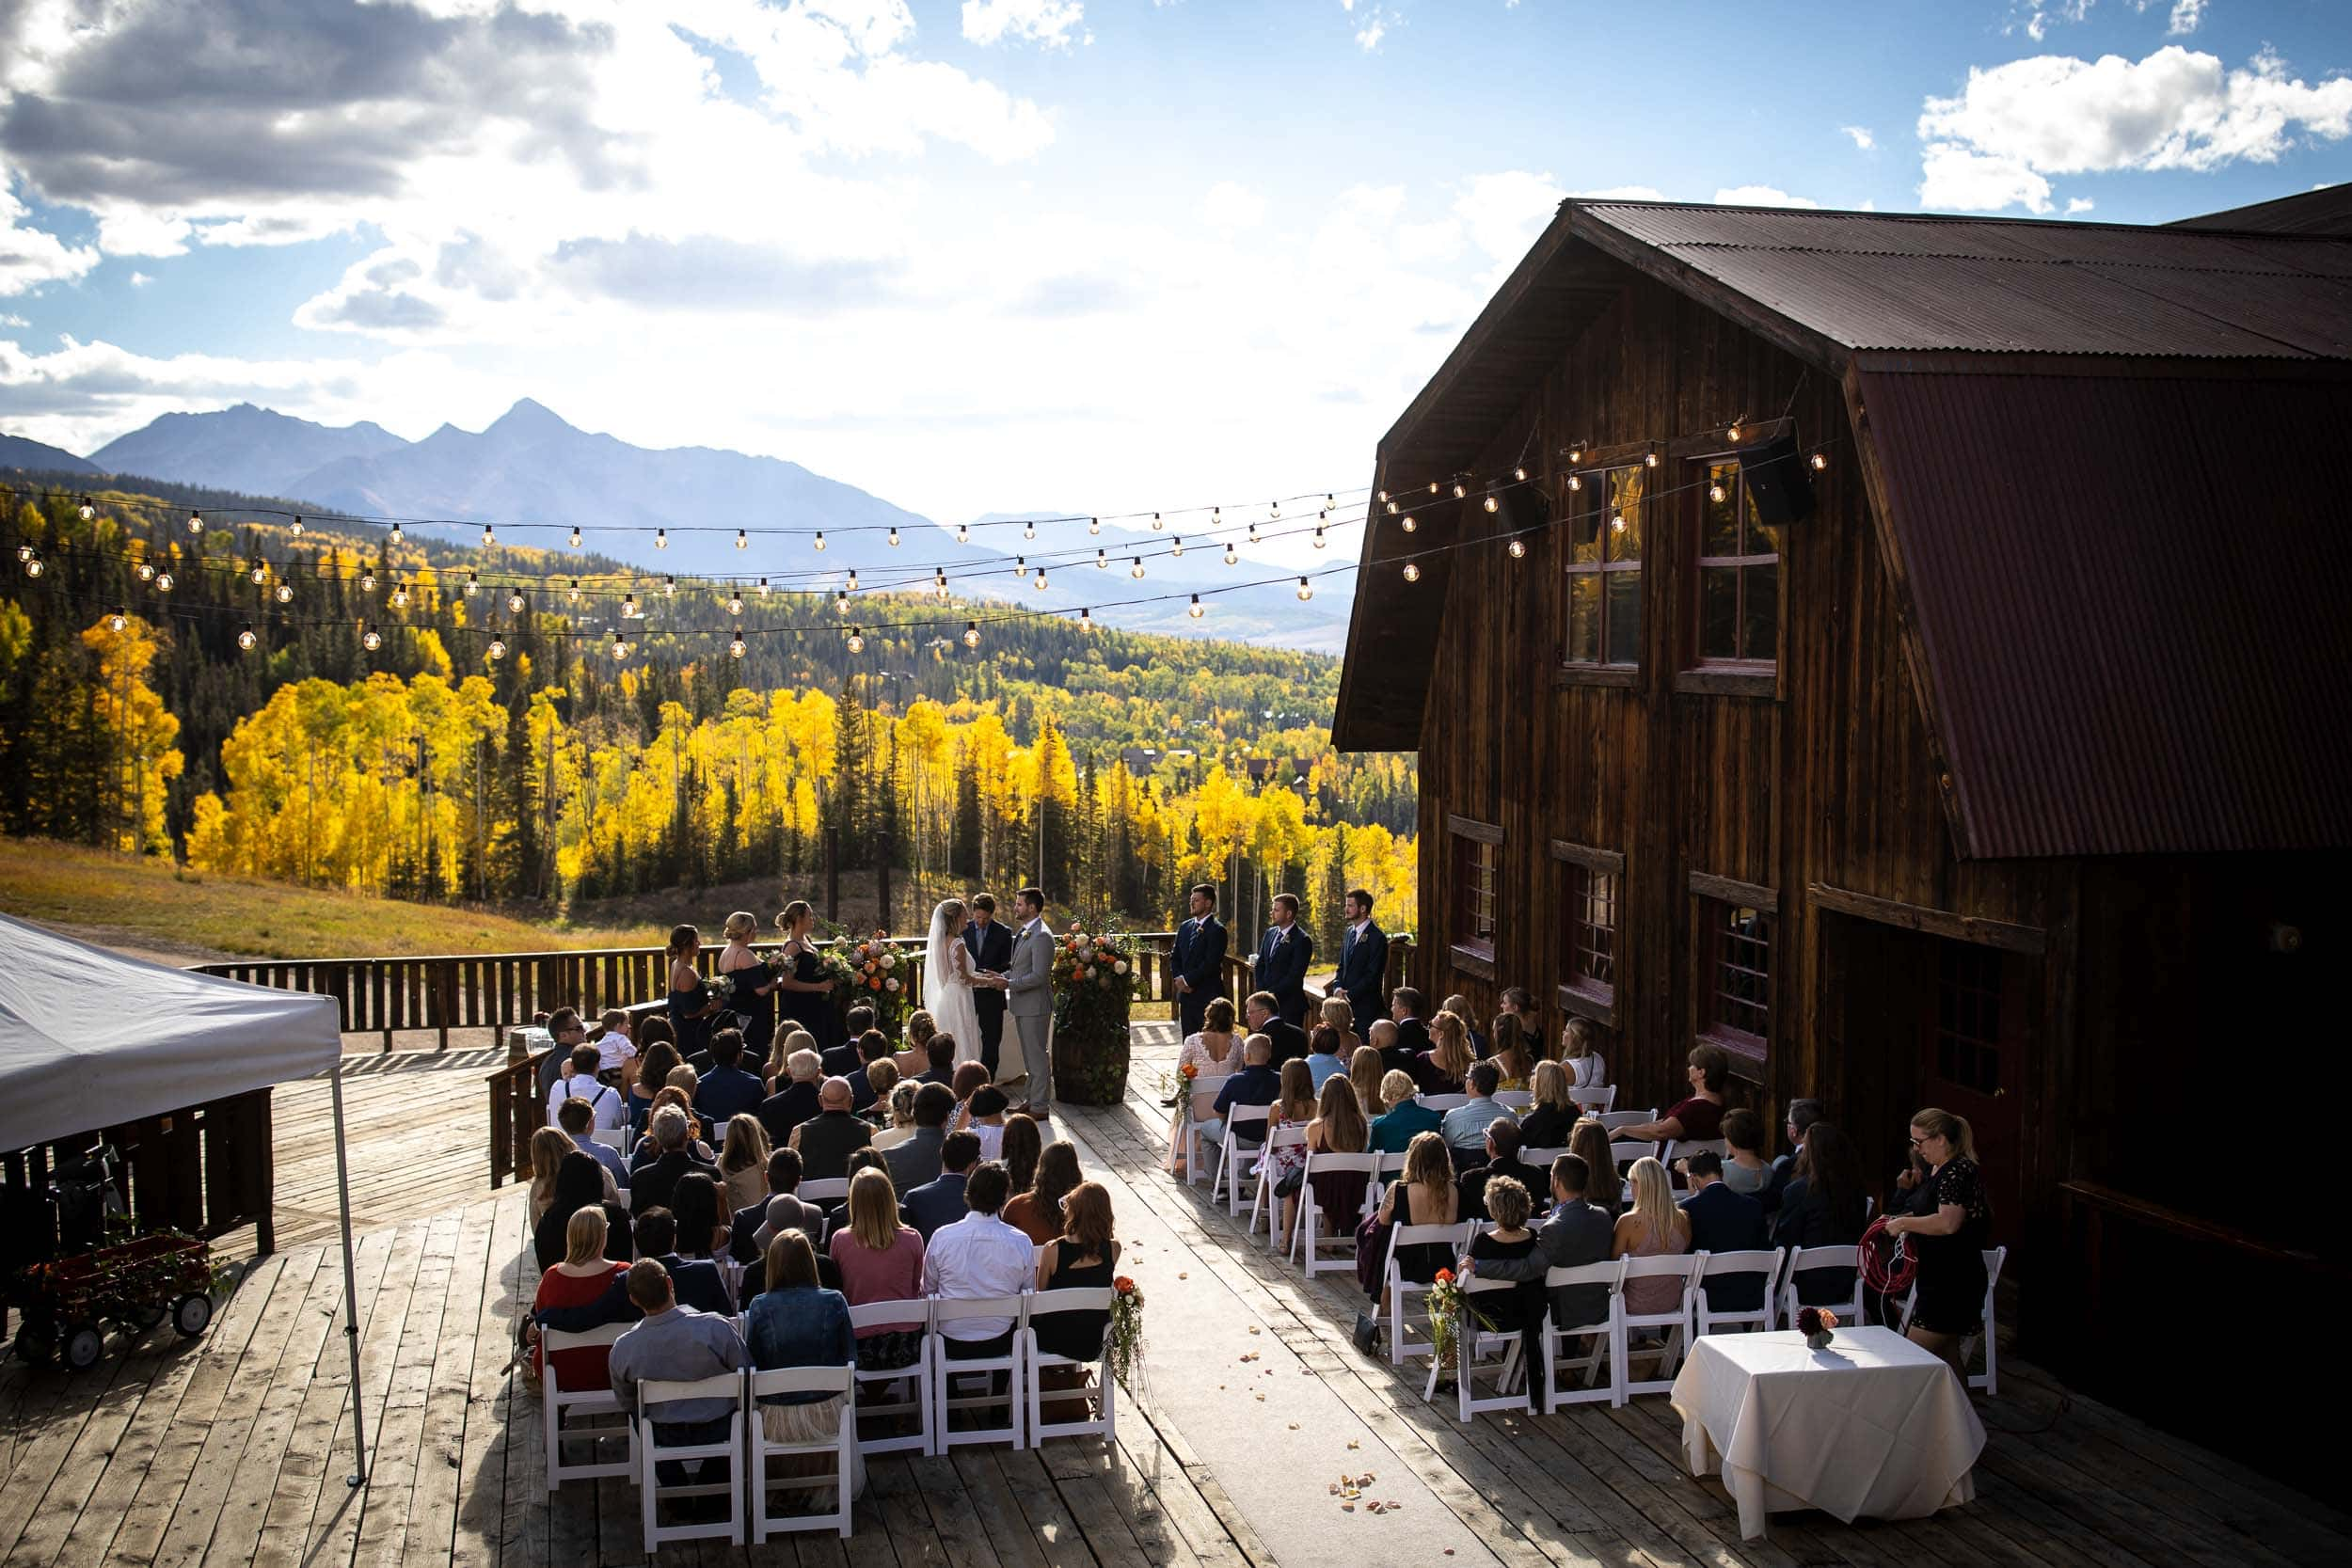 Joakim and Becka's beautiful fall wedding in the mountains of Colorado